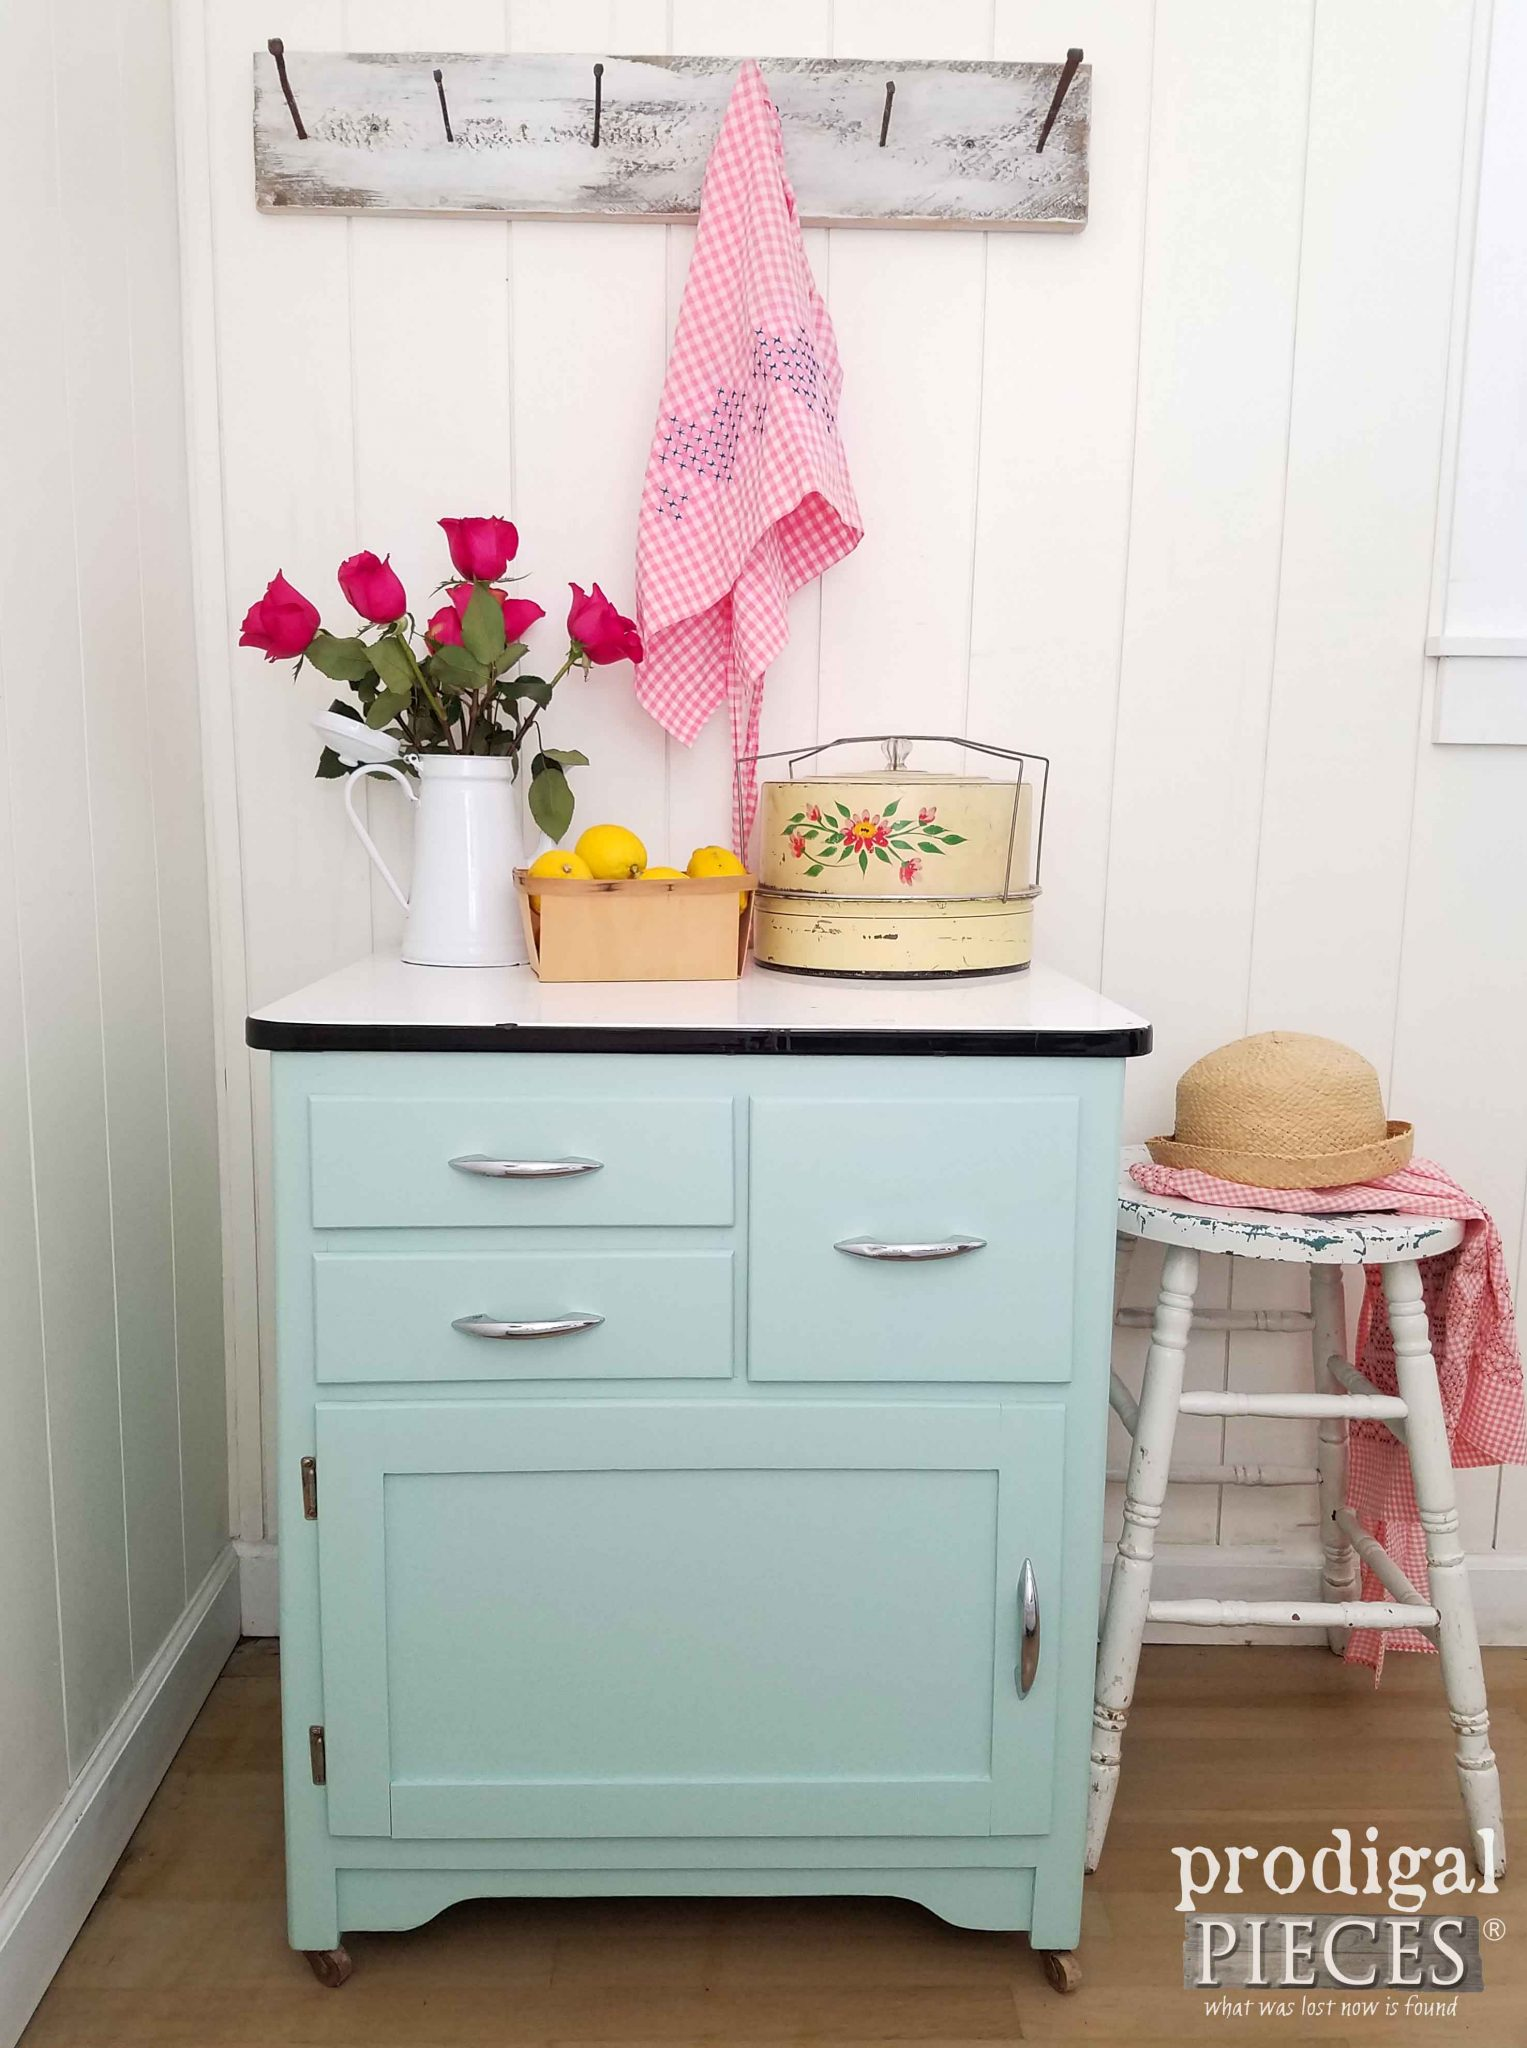 Enamel Cabinet Makeover ~ Cottage Style - Prodigal Pieces